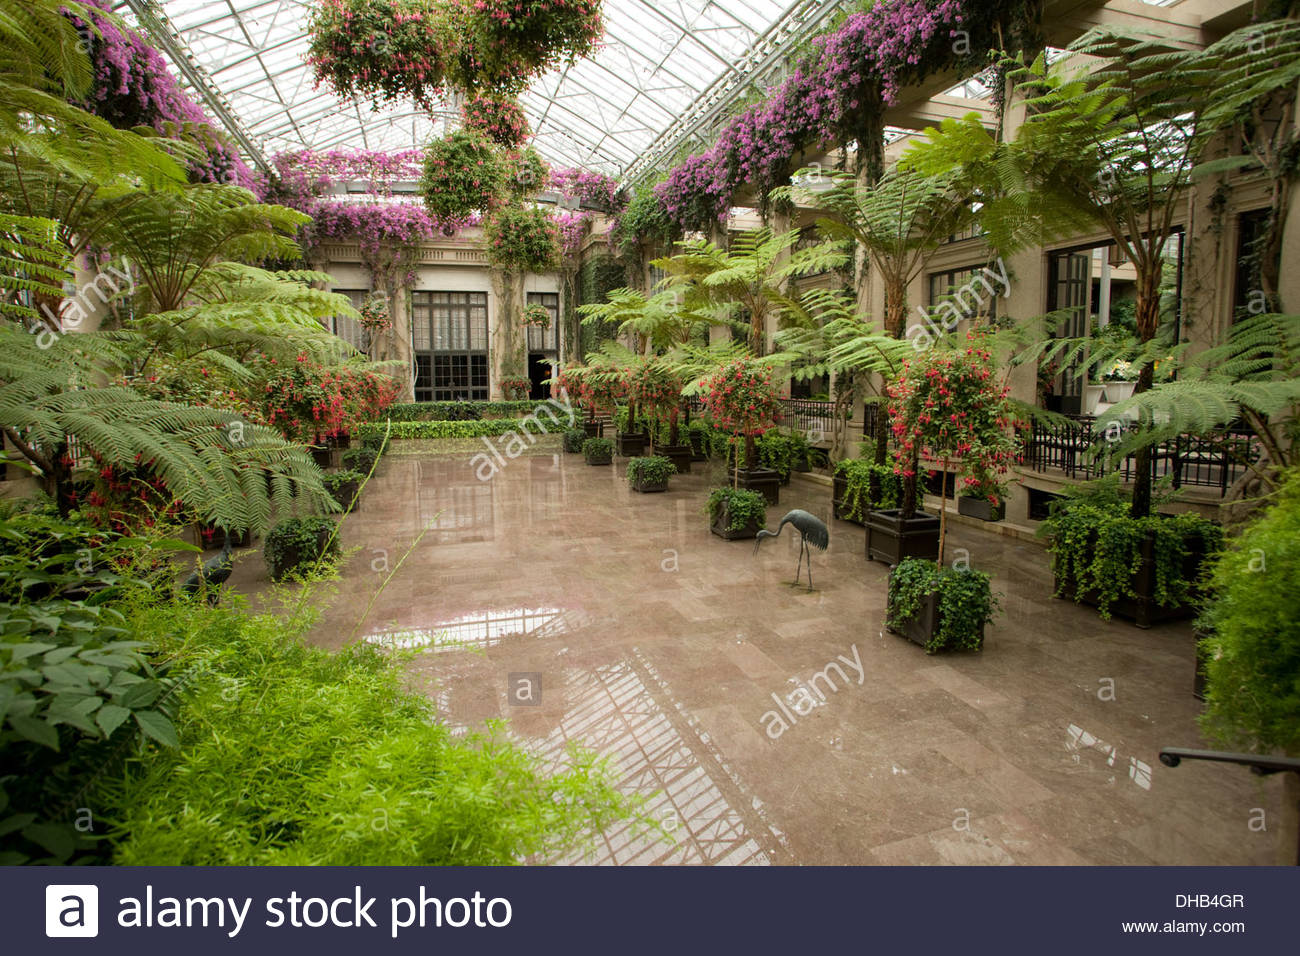 Longwood Garden Stock Photos & Longwood Garden Stock Images - Page 2 ...